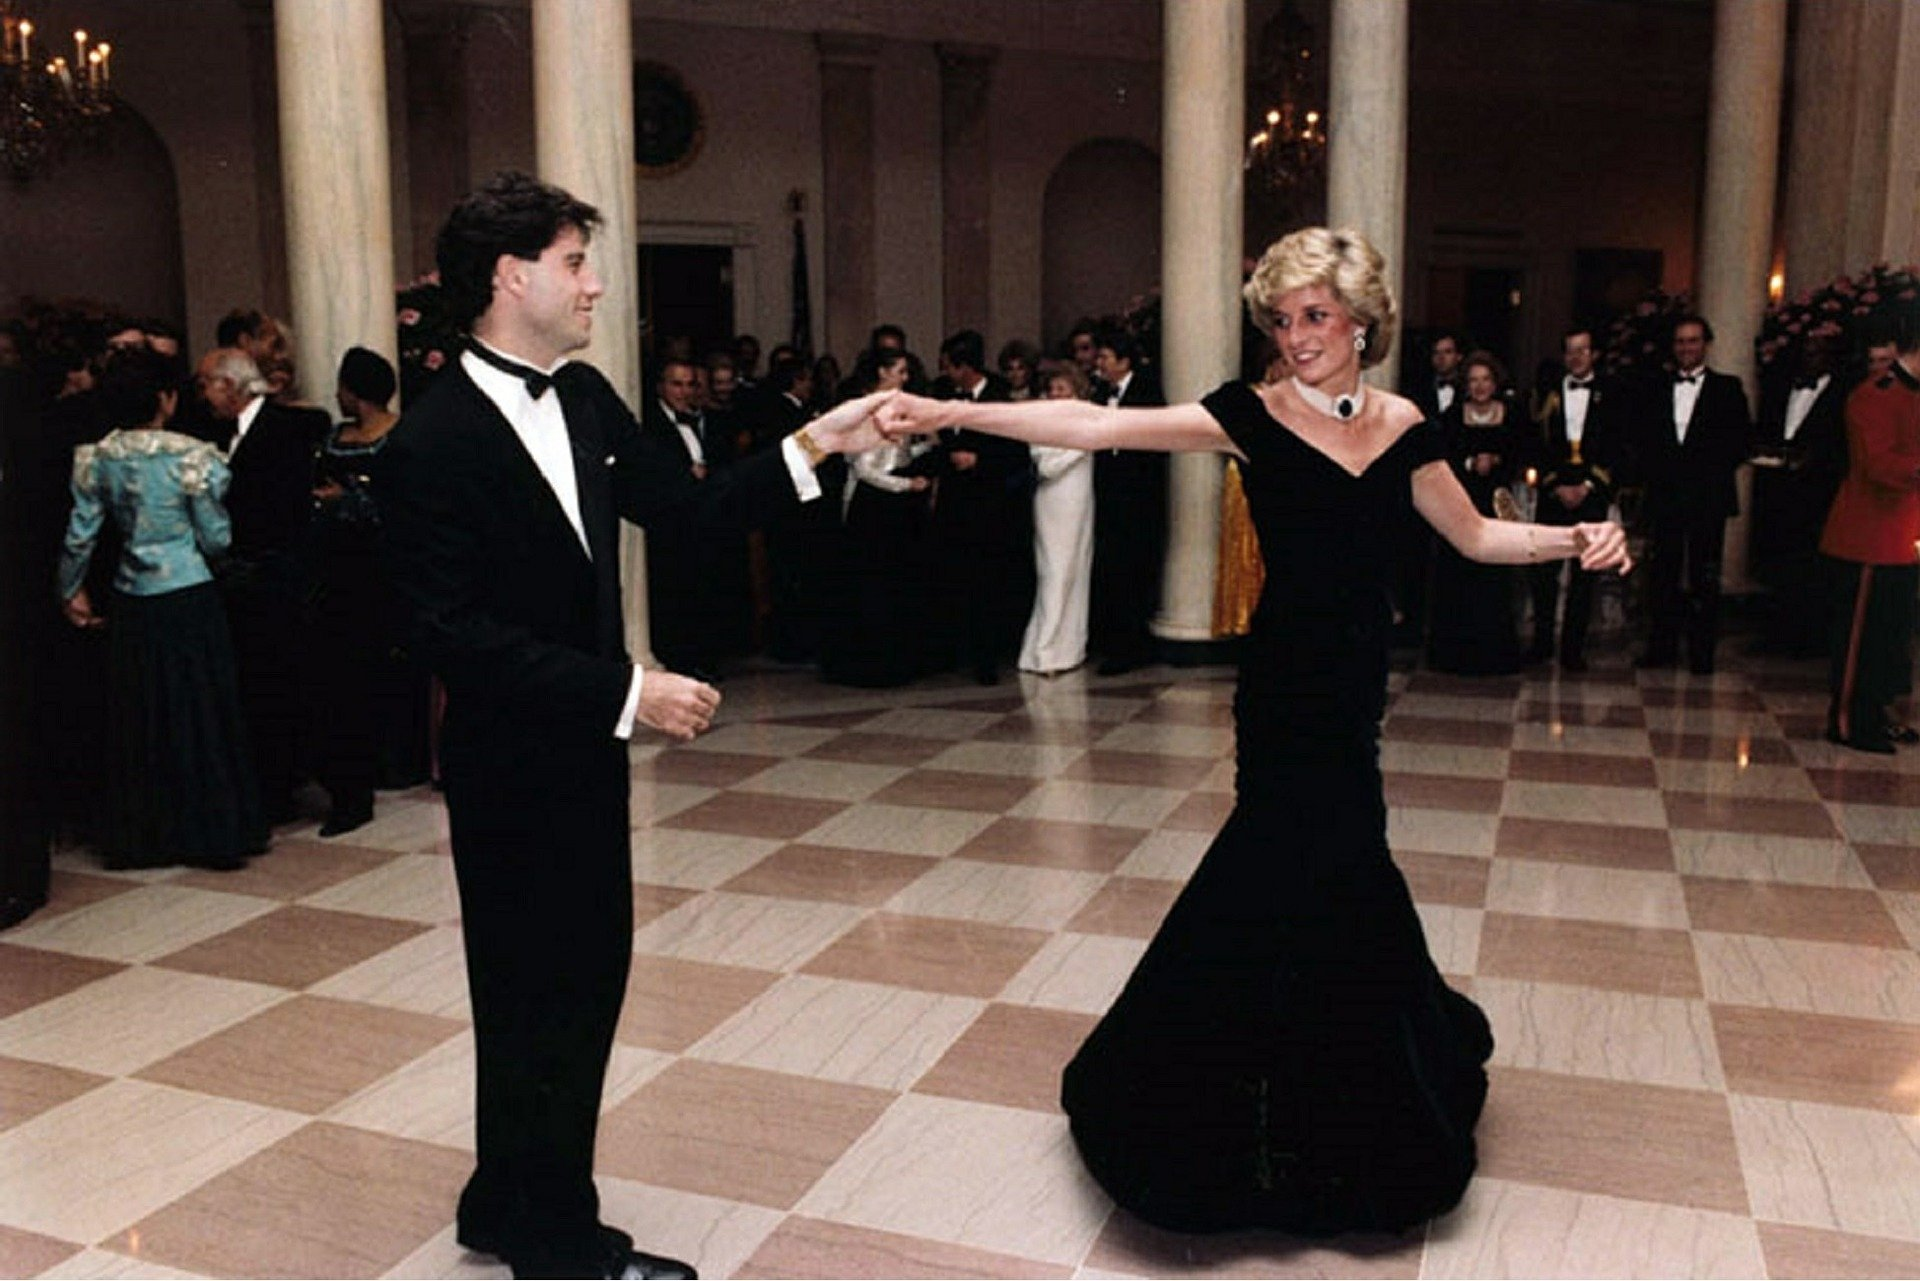 John Travolta twirls Princess Diana on the dance floor while at a White House banquet in 1895. | Source: Pixabay